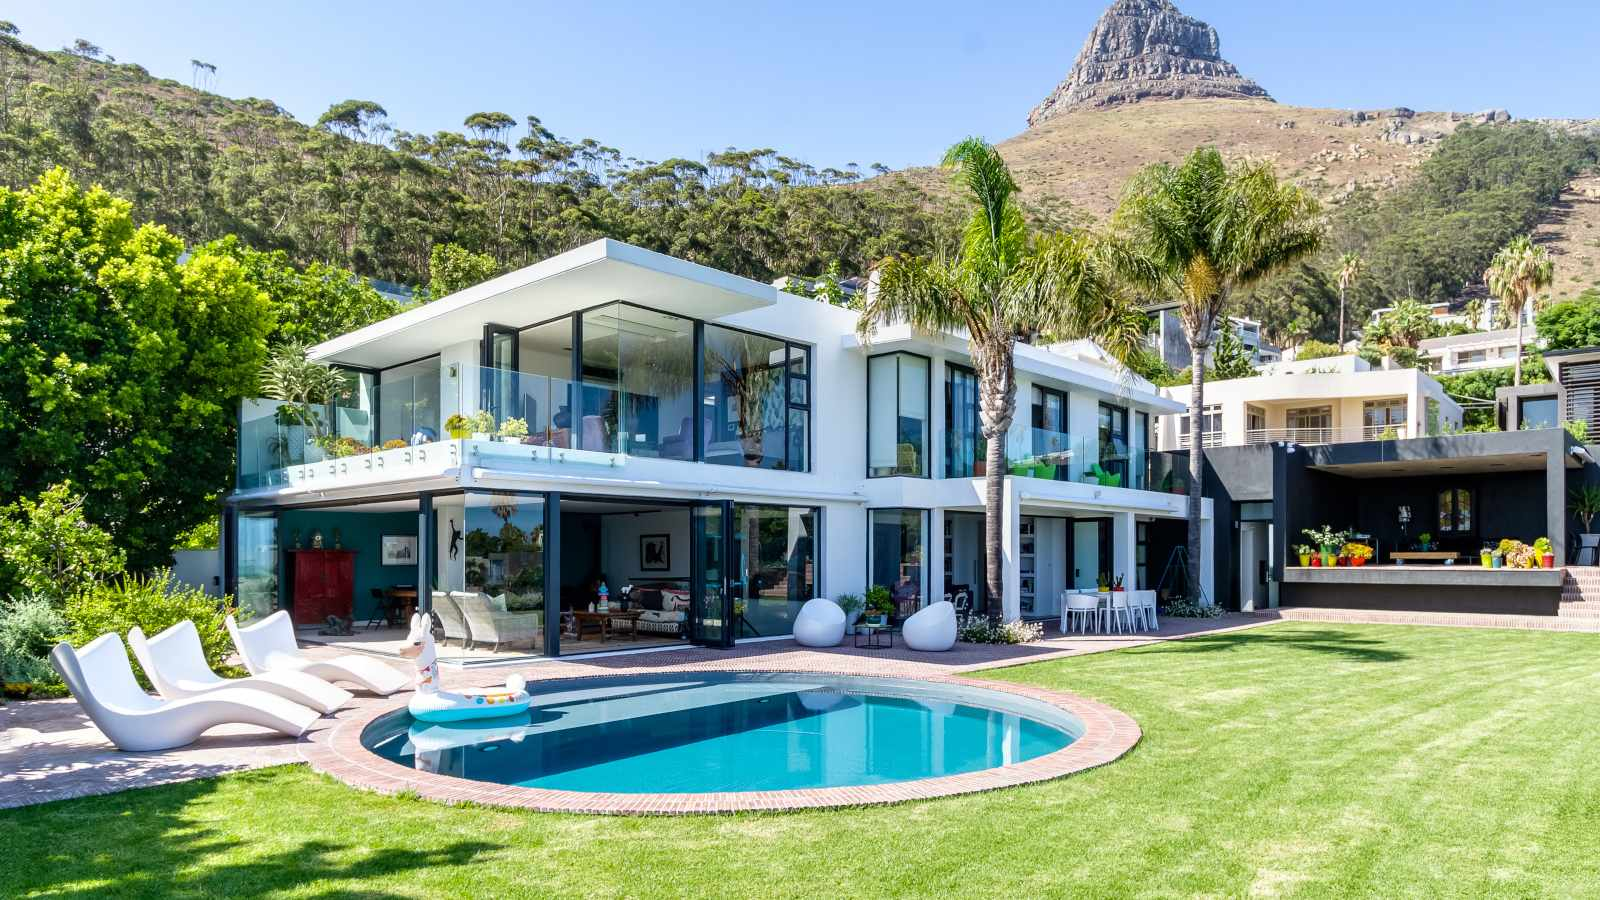 SEE: Film famous real estate